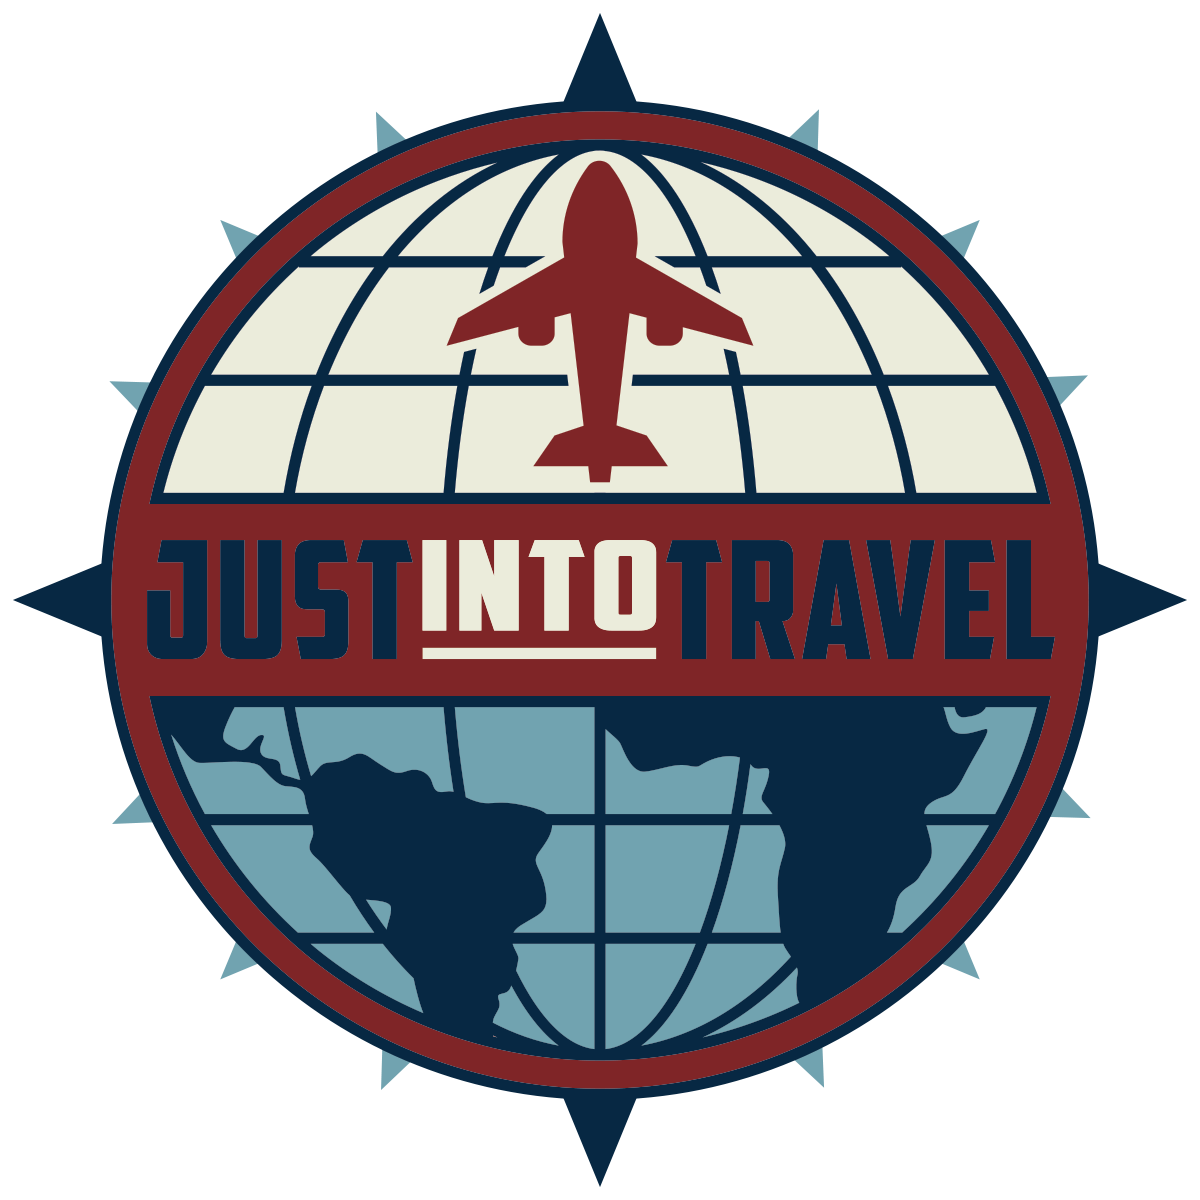 JustINTOtravel - An Adventurer's travel blog from around the world!